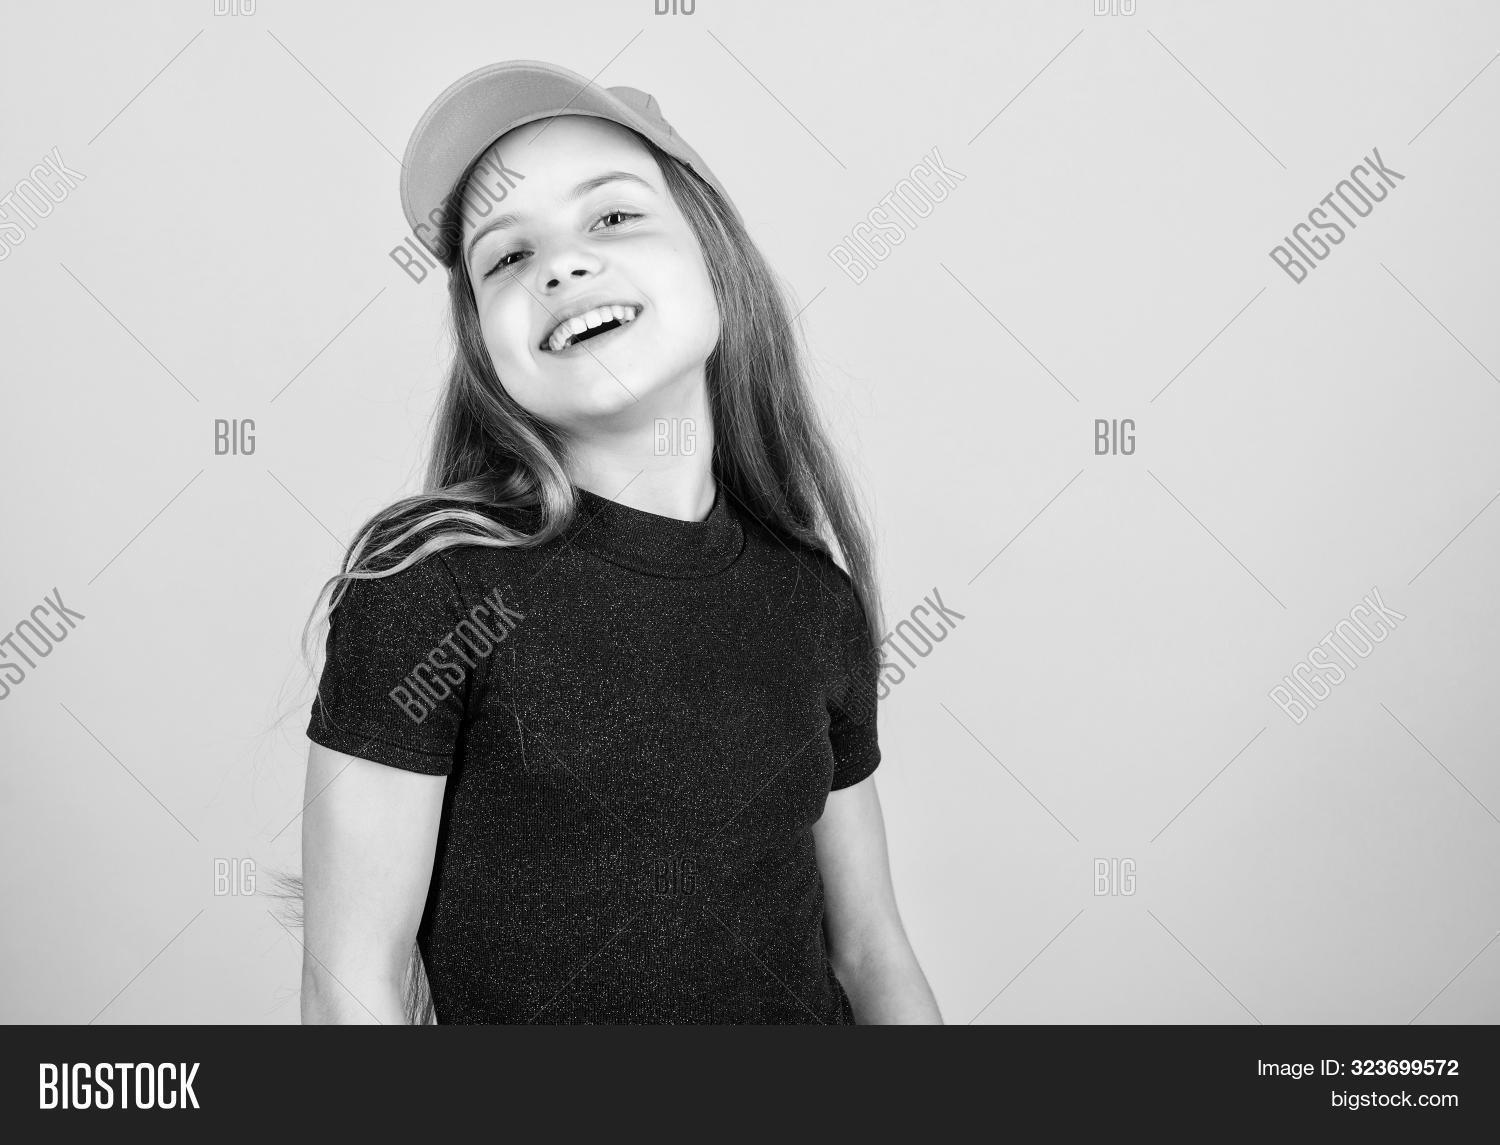 Modern Fashion. Hat Or Cap. Stylish Accessory. Kids Fashion. Feeling Confident With This Cap. Girl C